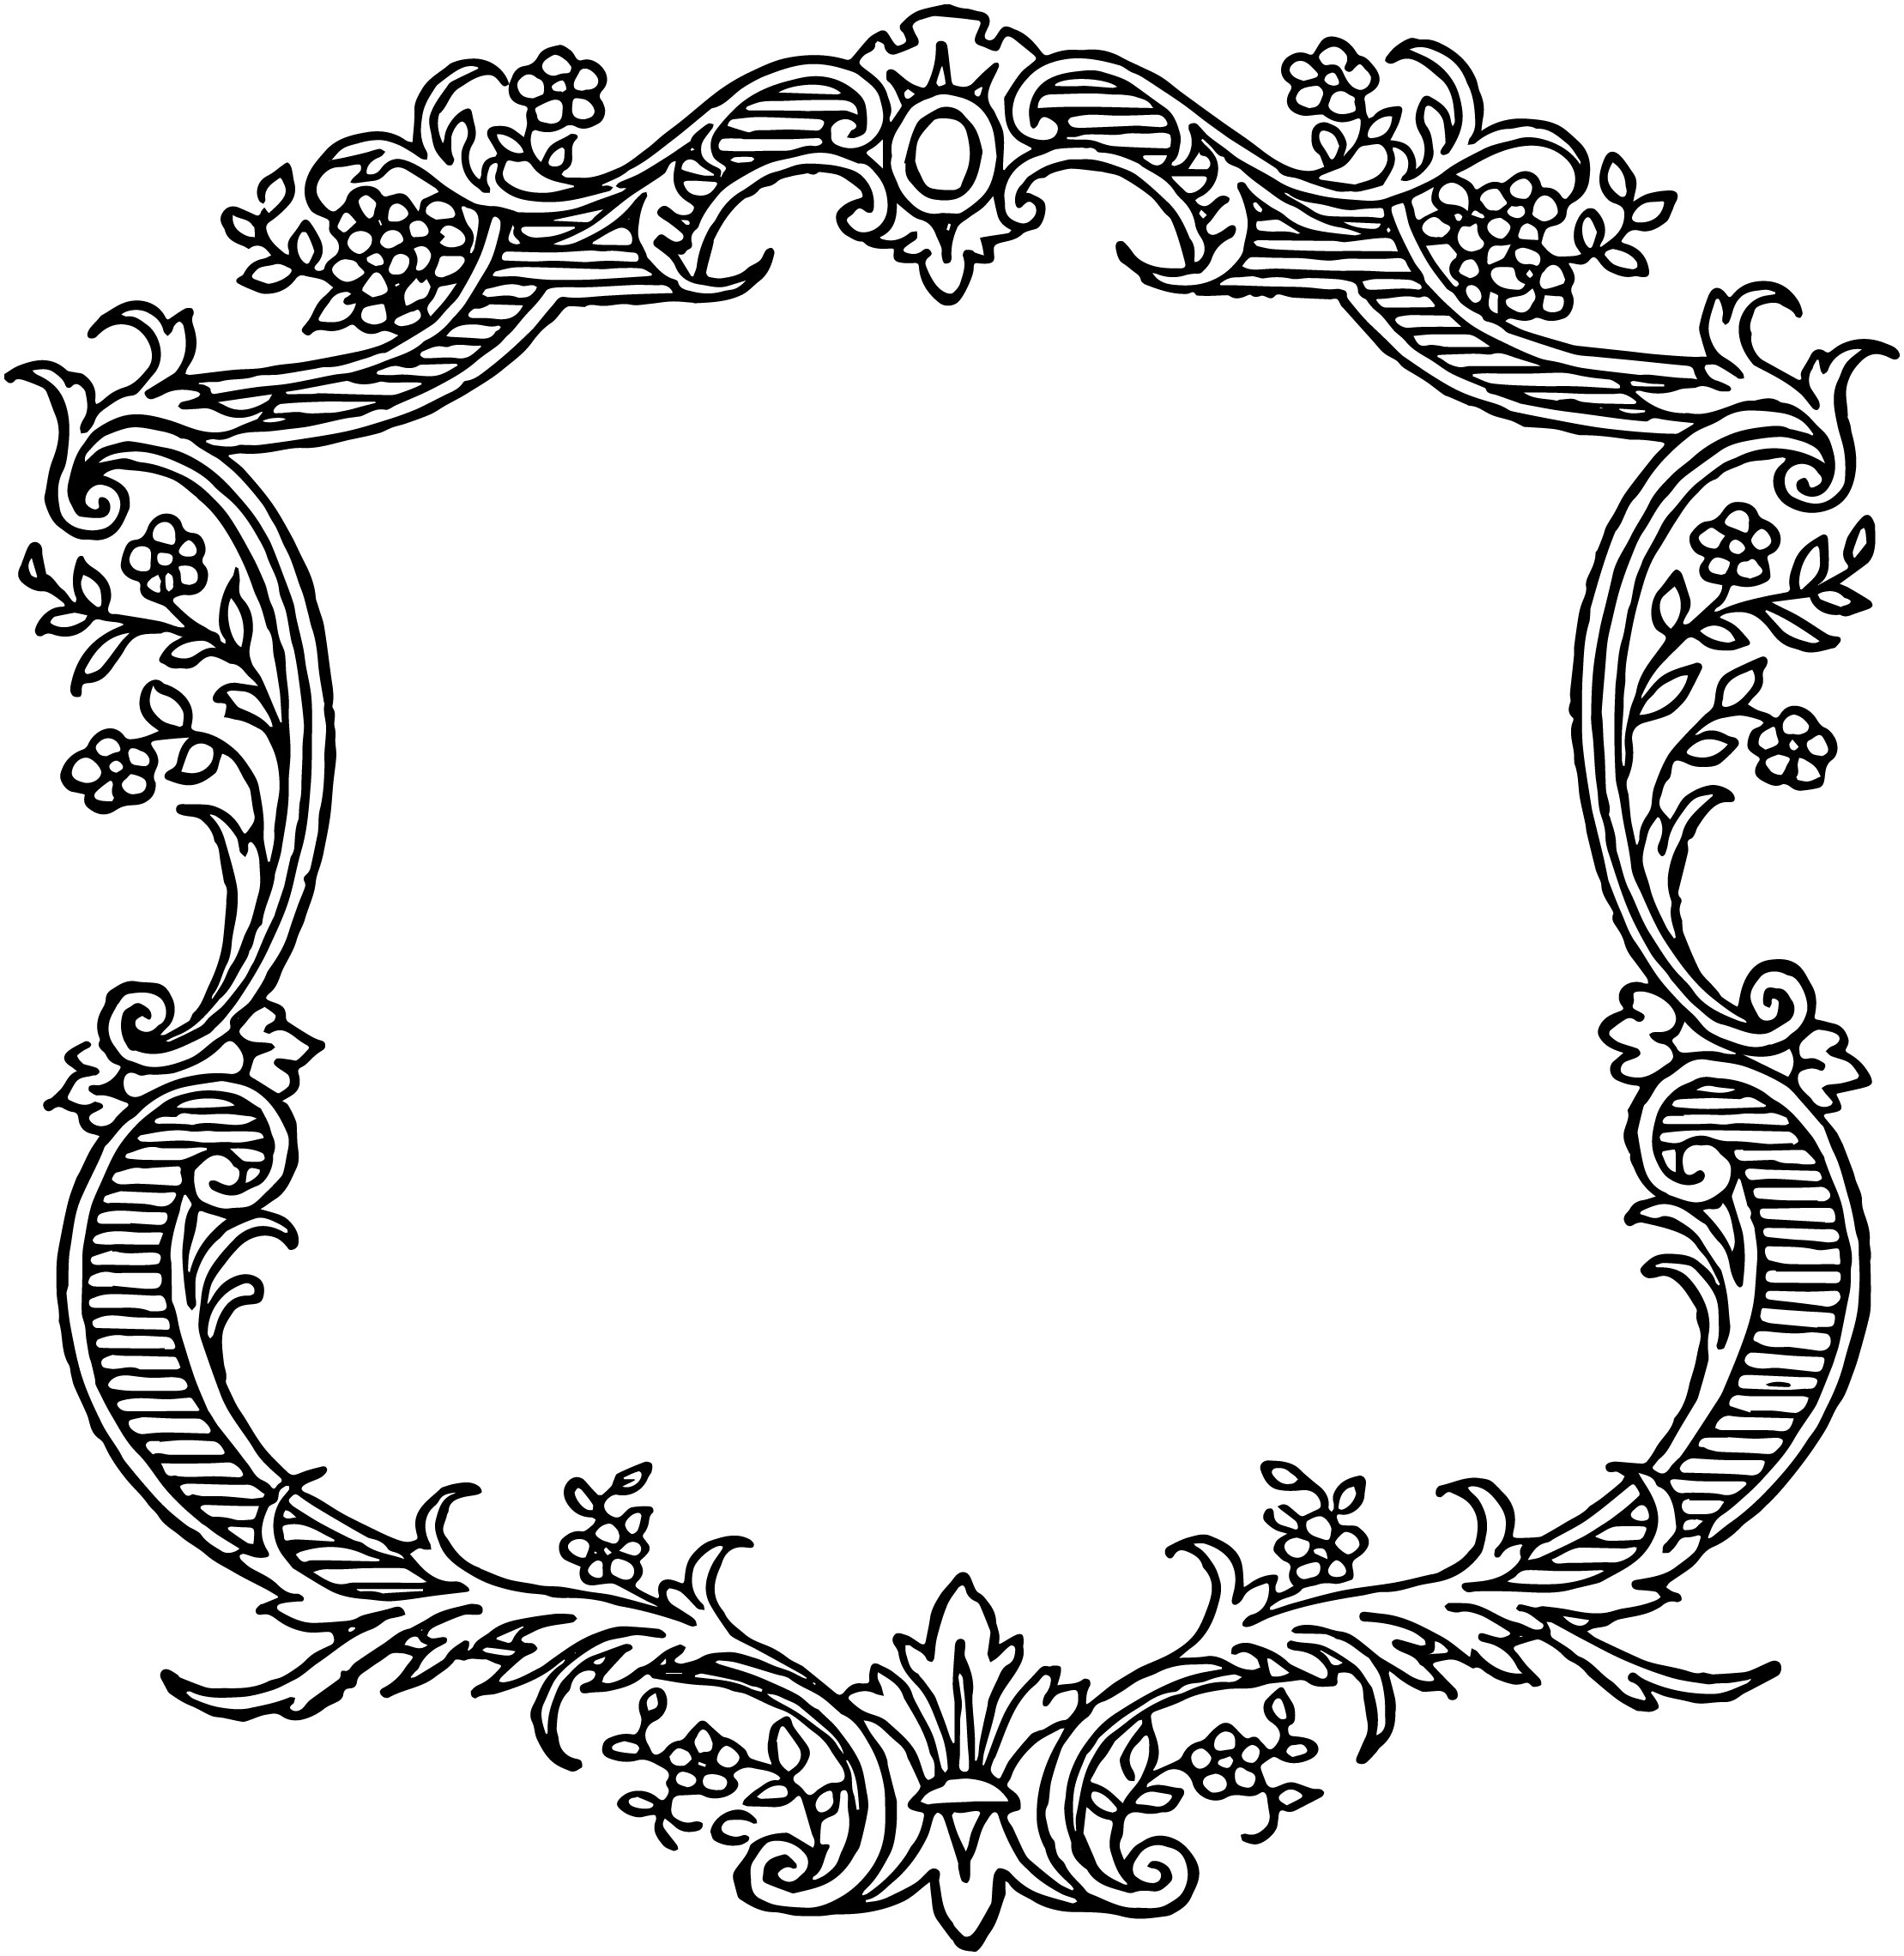 Free Scroll Borders, Download Free Clip Art, Free Clip Art On - Free Printable Wedding Scrolls